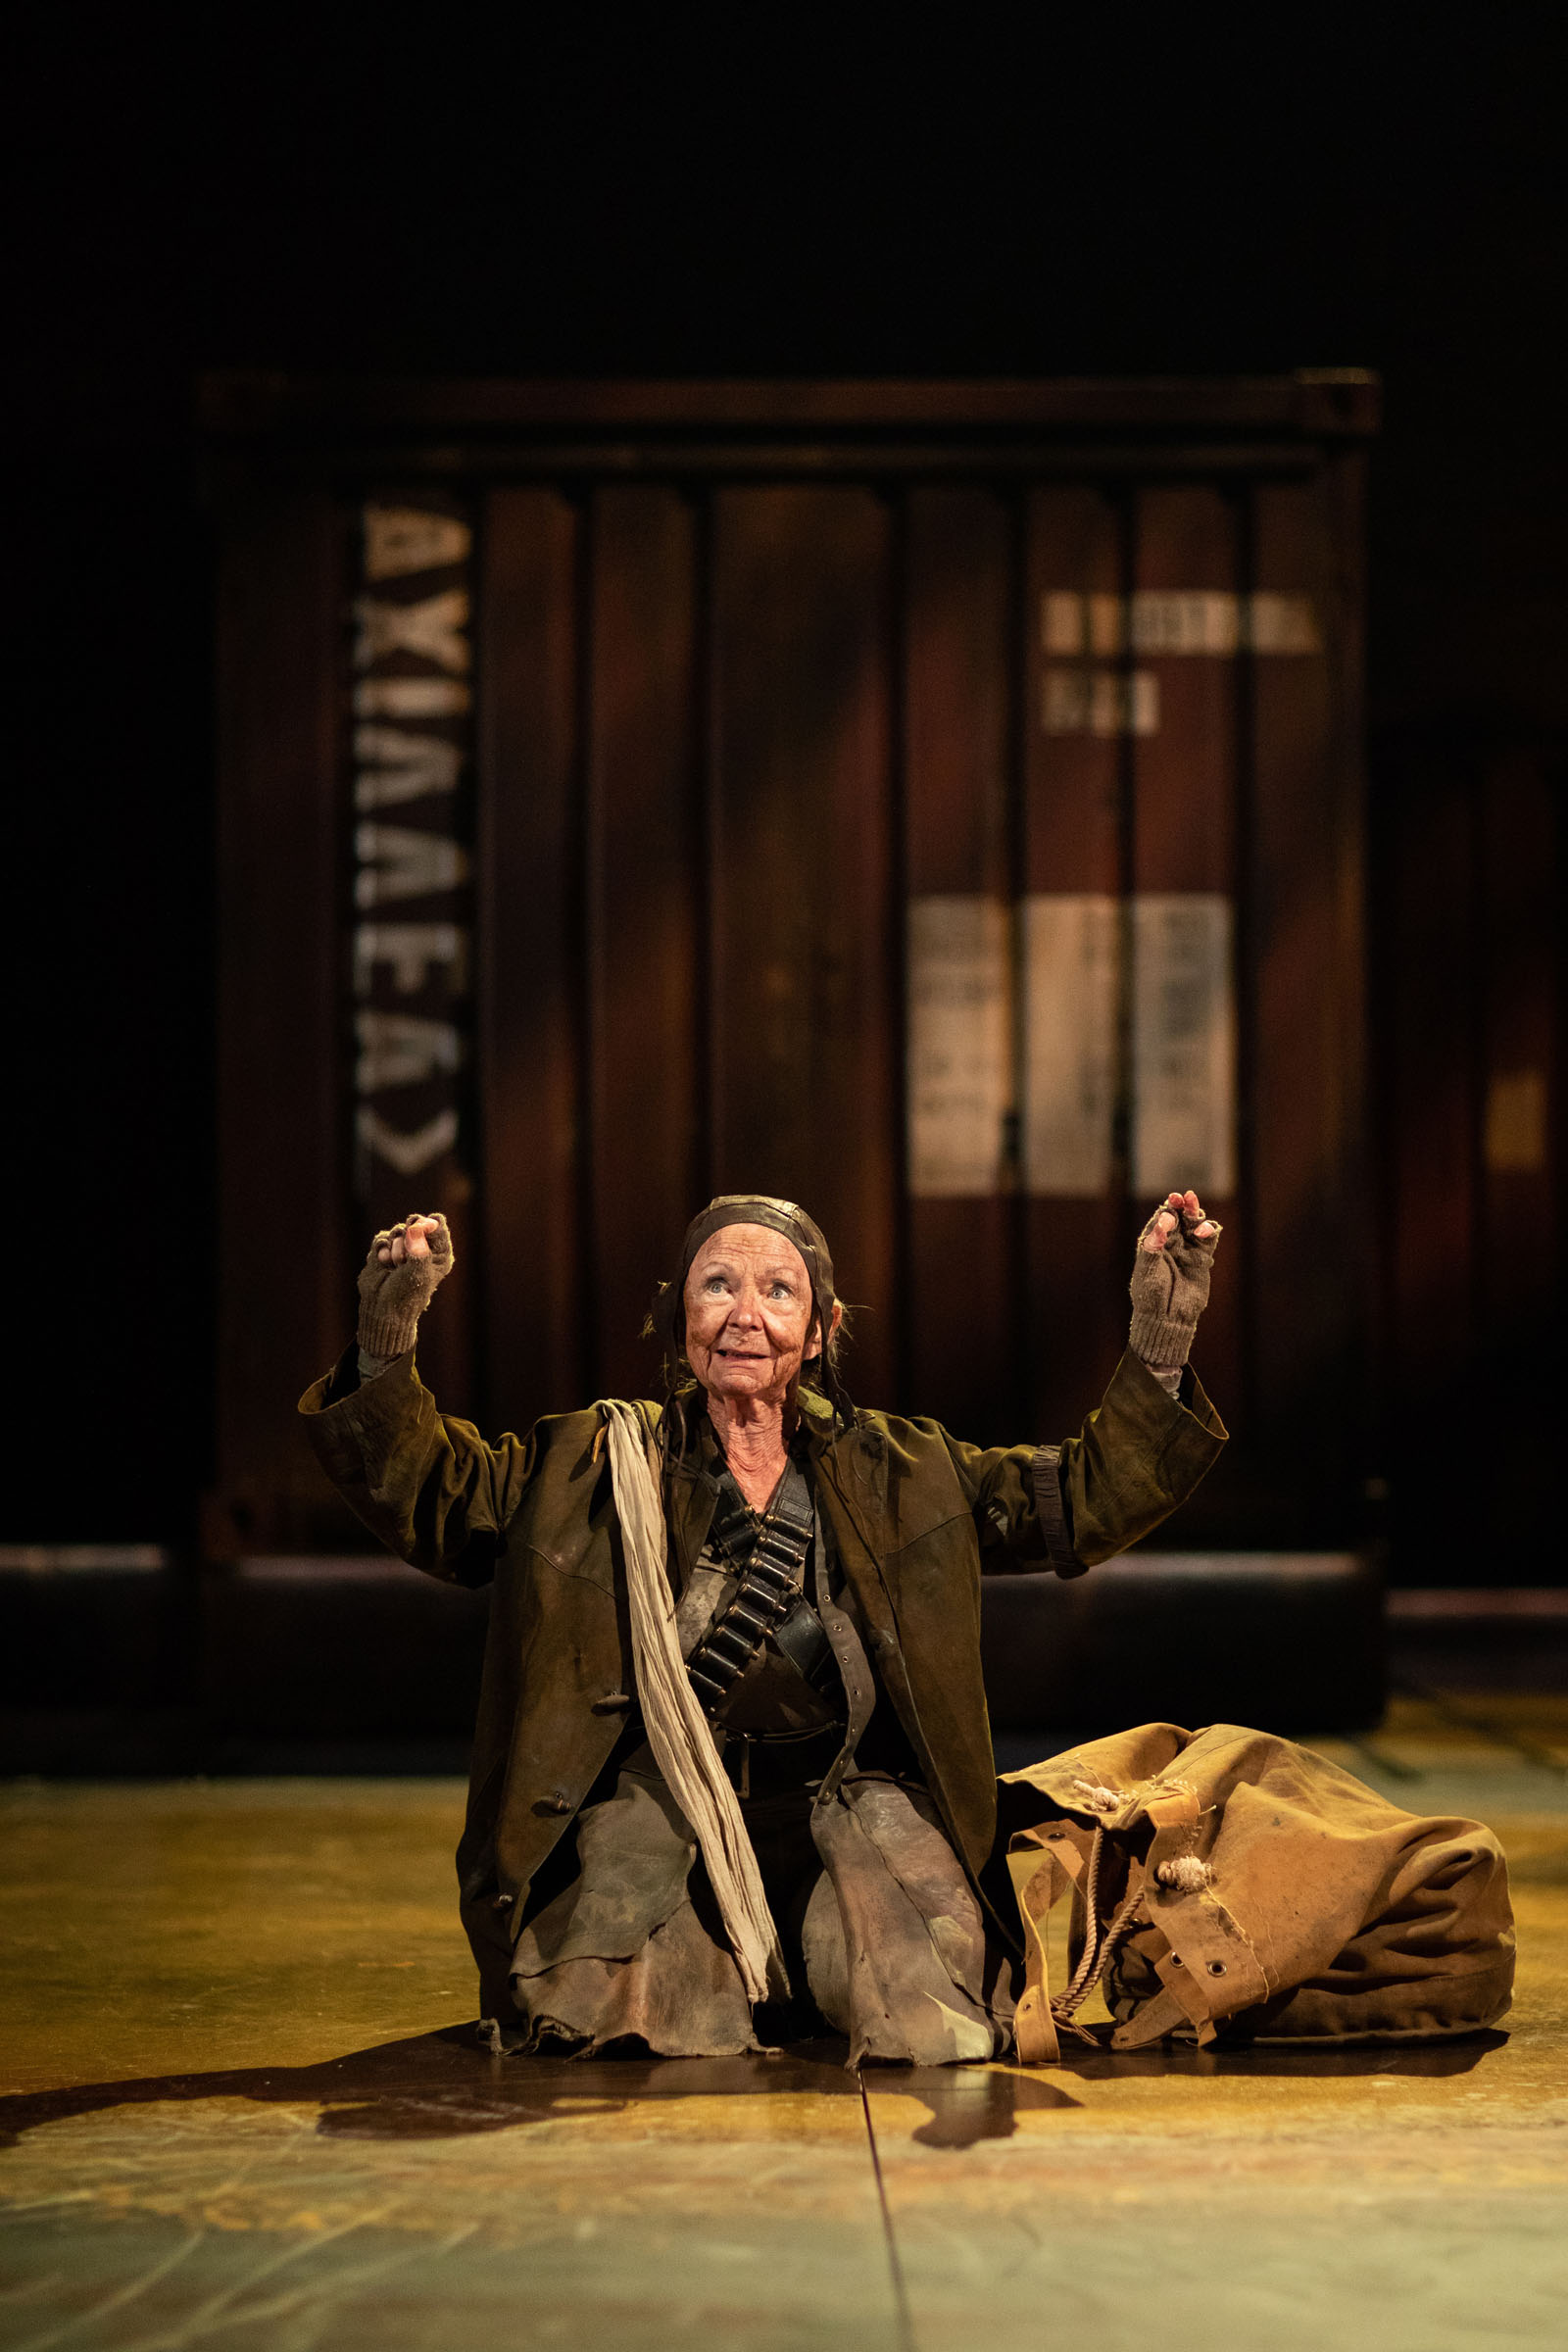 Sheila Reid as Thersites in Troilus and Cressida